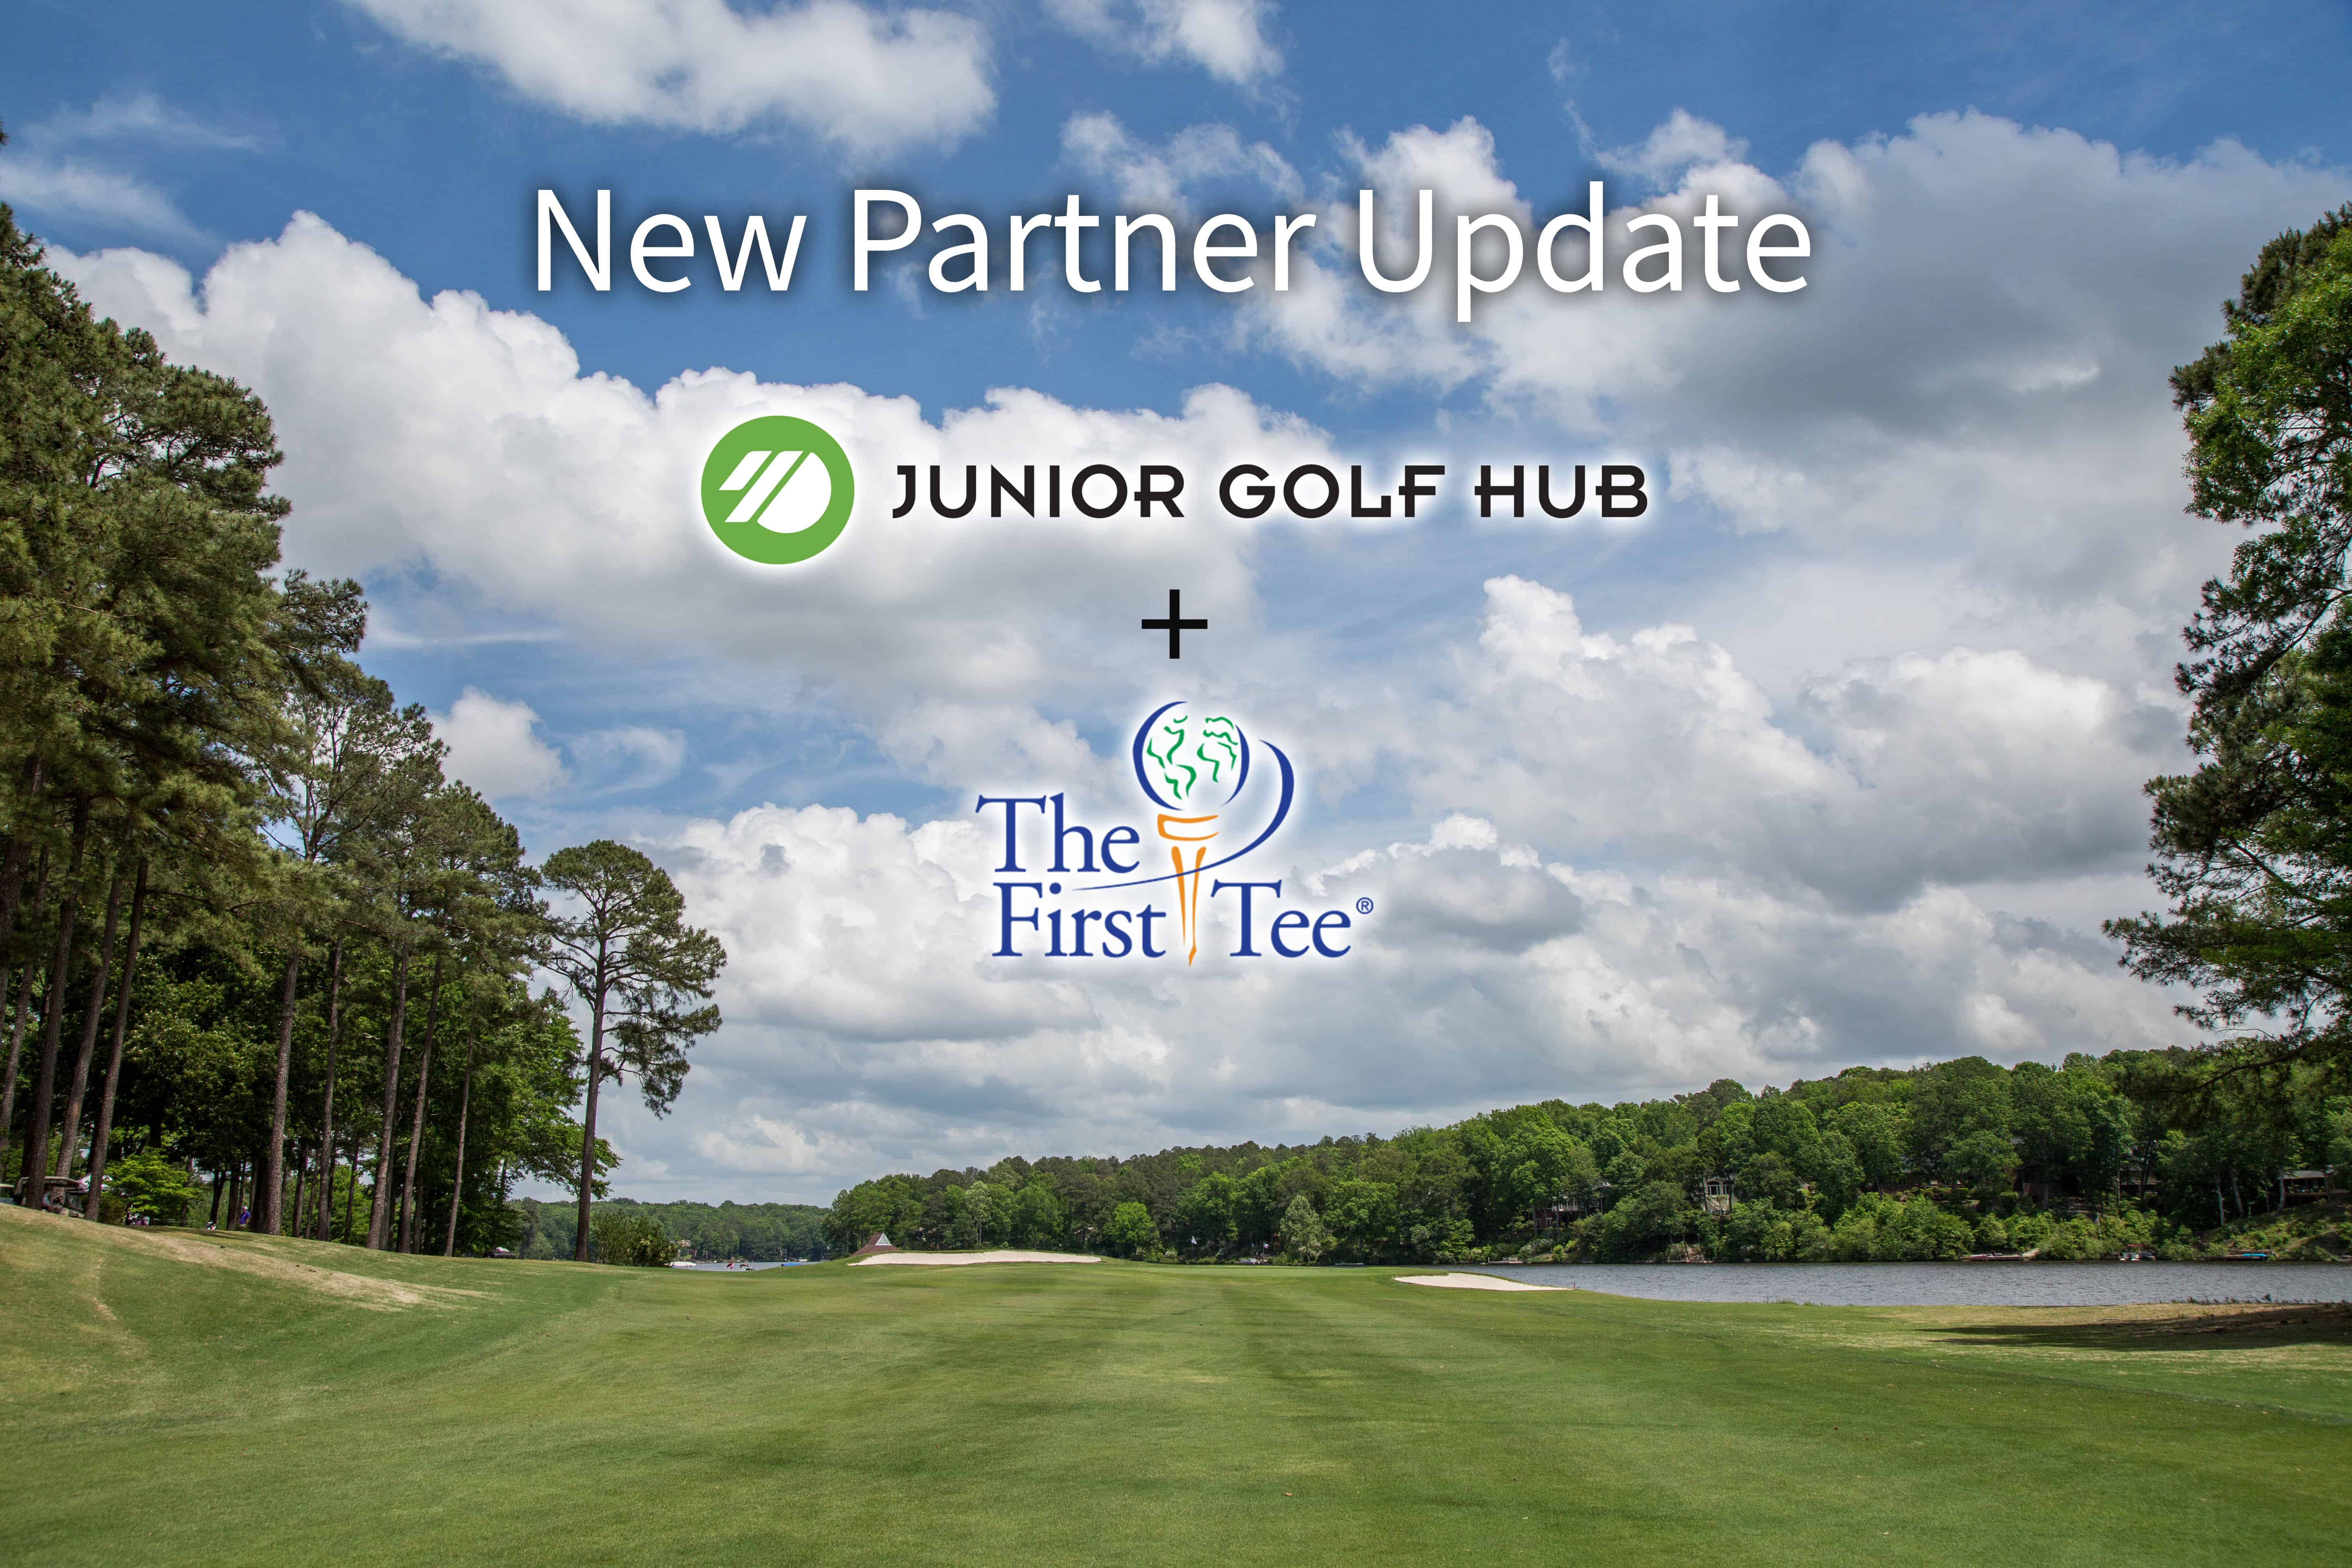 JGH and The First Tee of Connecticut Announce Partnership2 min read